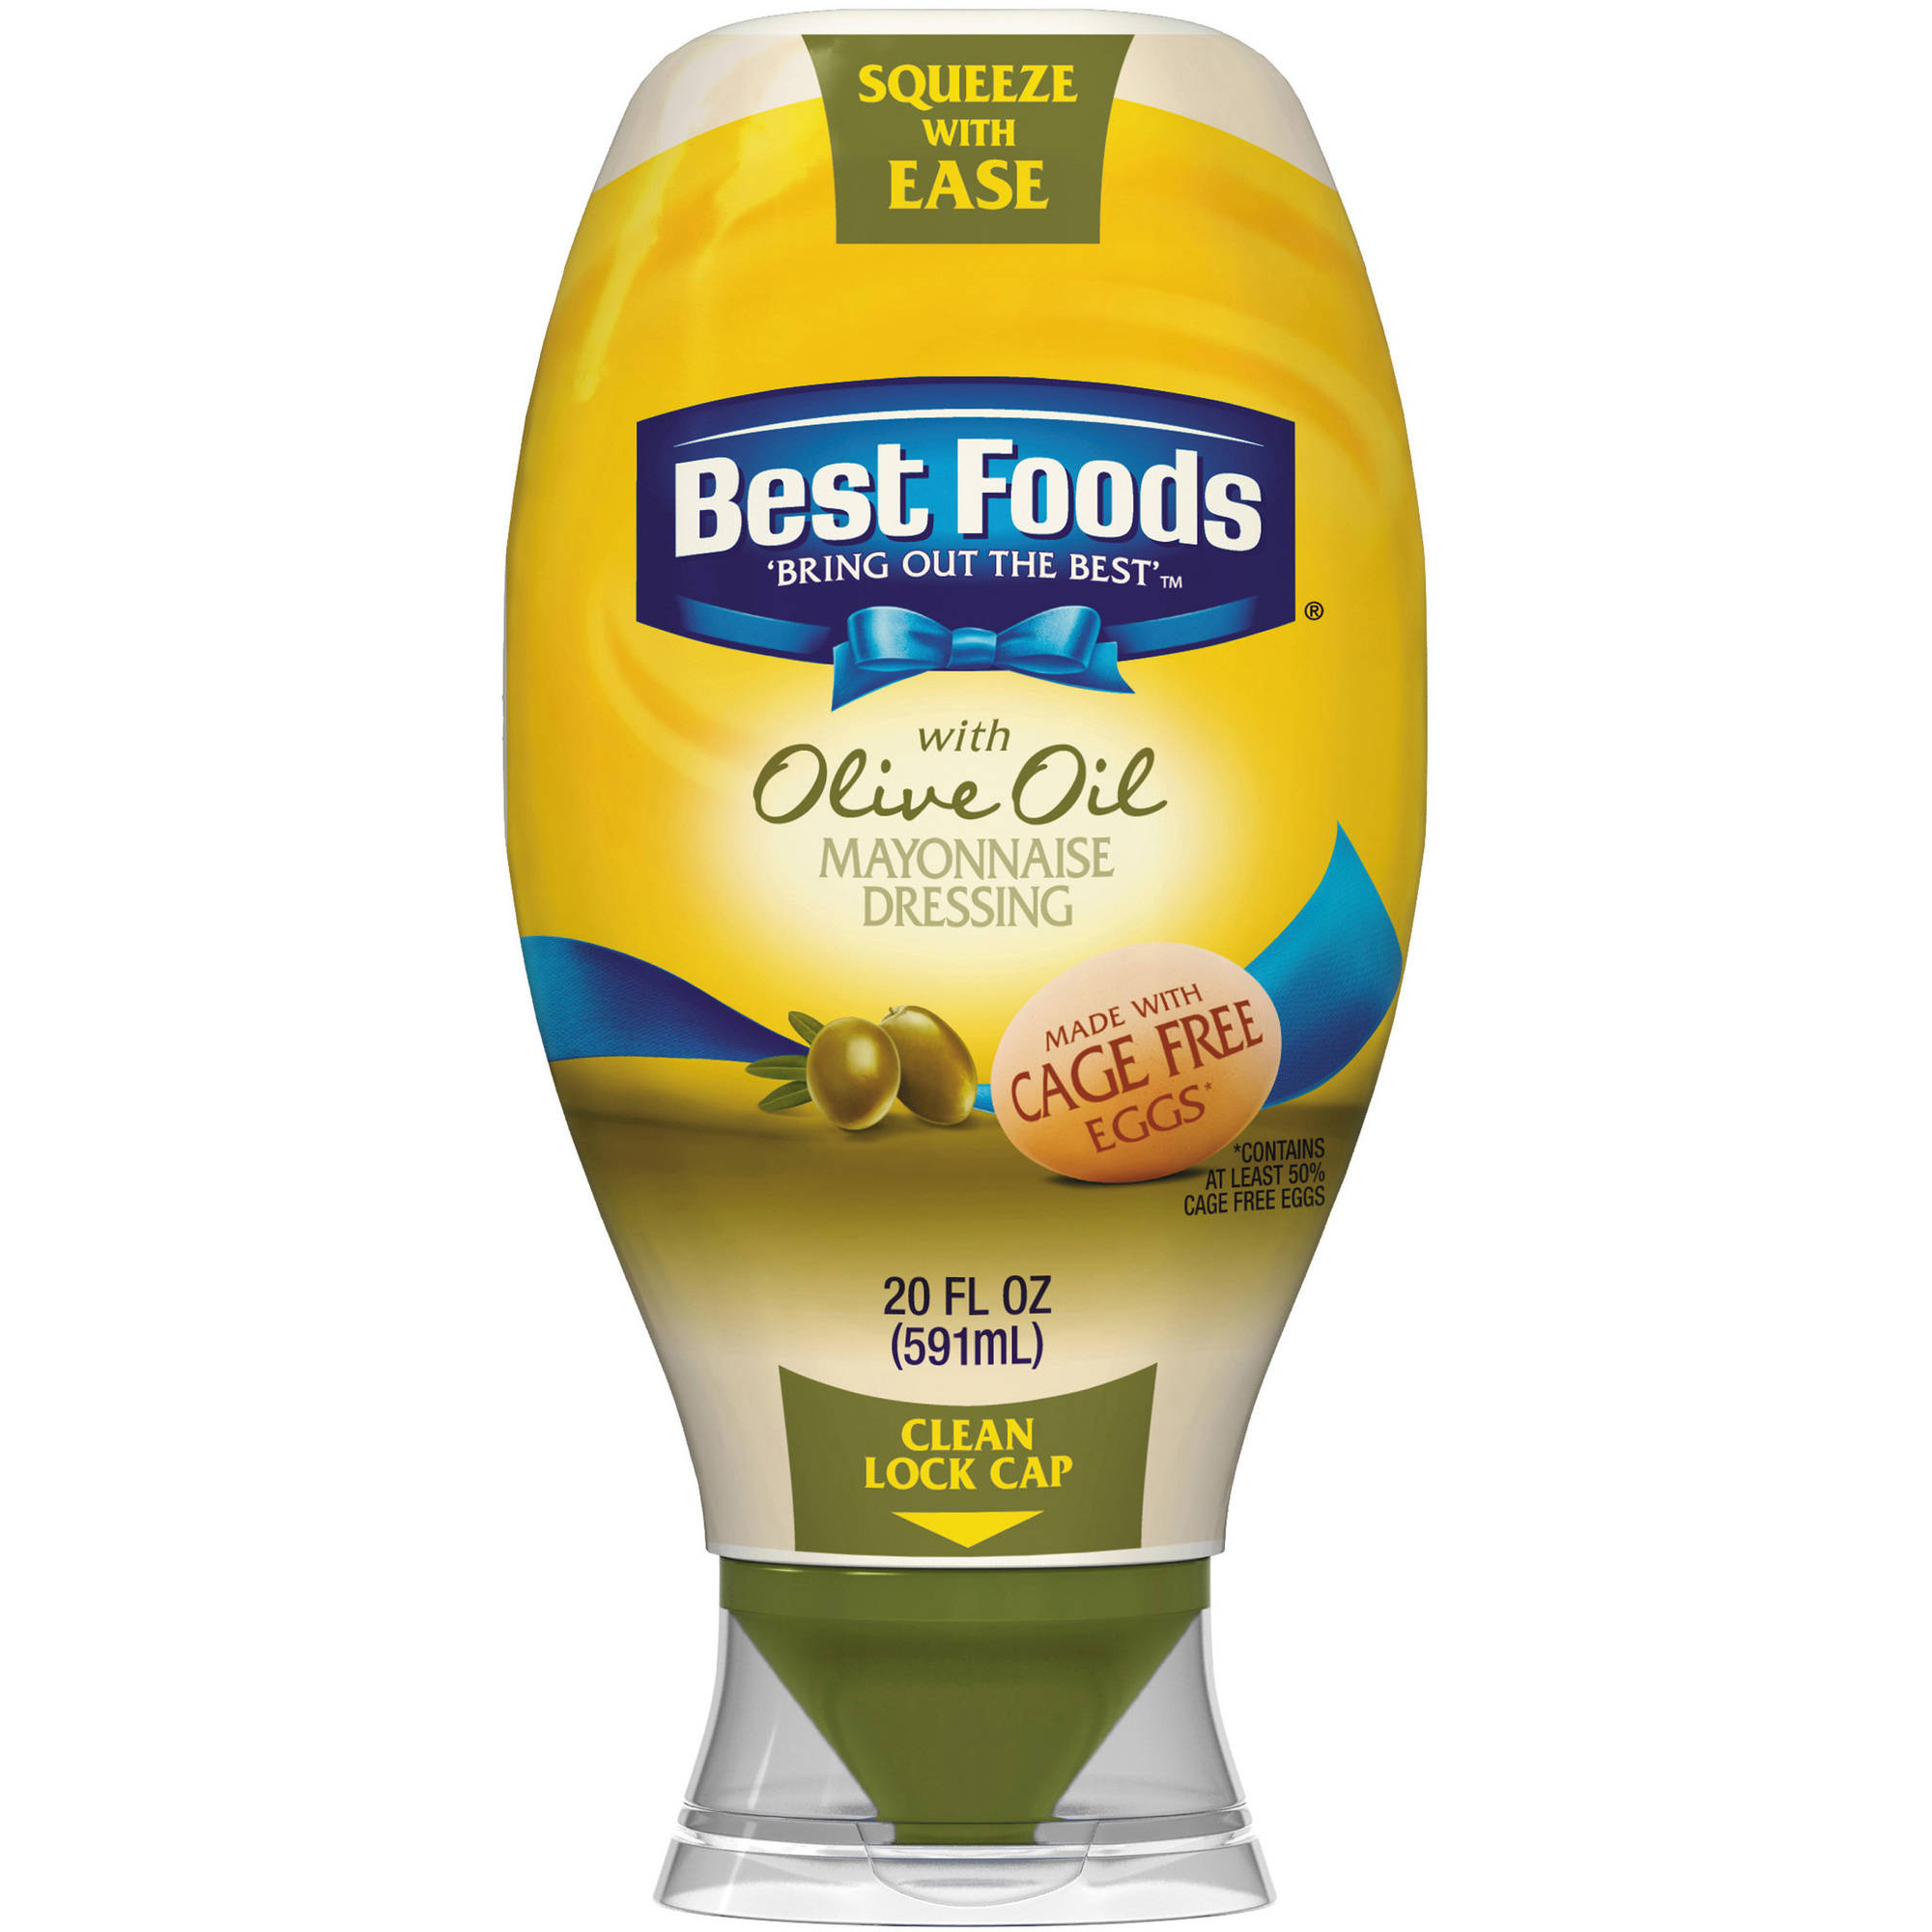 Best Foods Squeeze Mayonnaise Dressing with Olive Oil, 20 oz